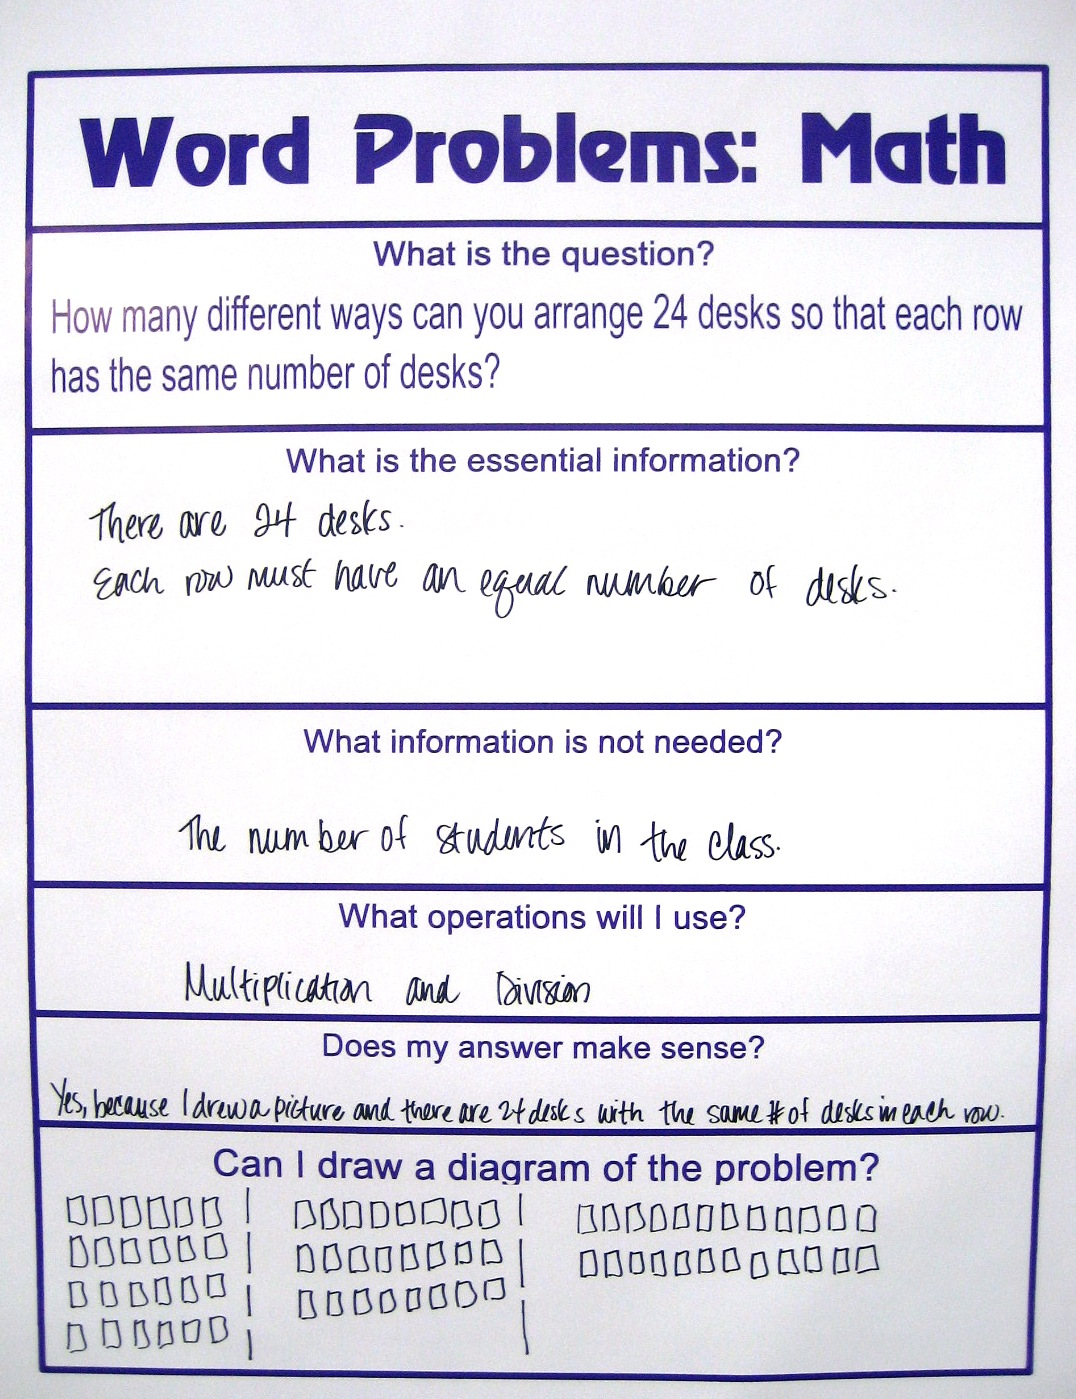 Grades K-5 Activity: Solving Word Problems